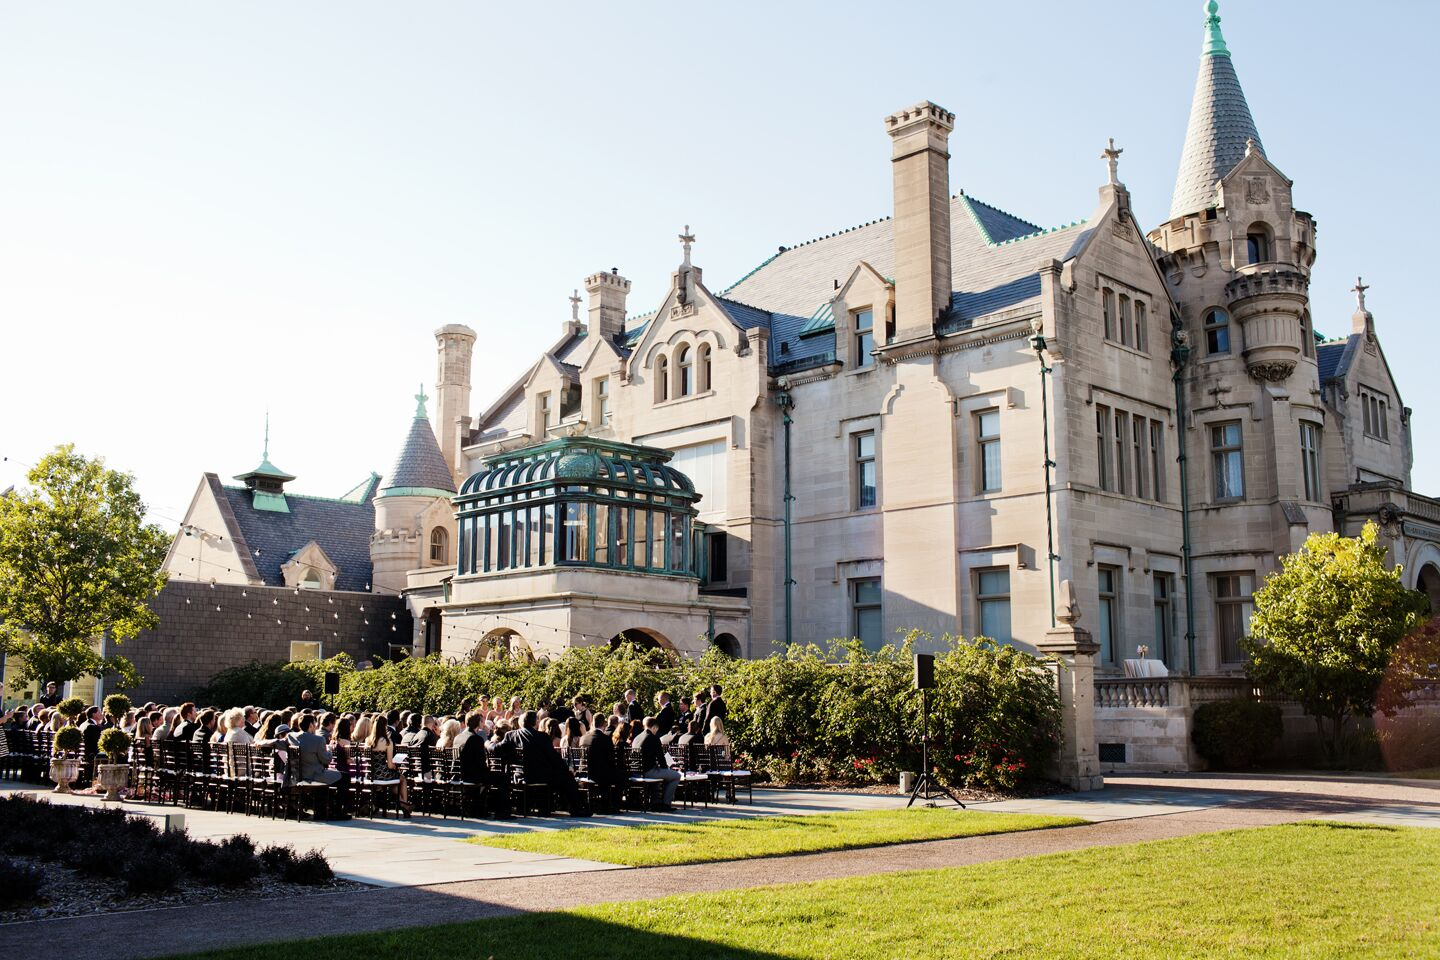 American Swedish Institute Wedding Venue